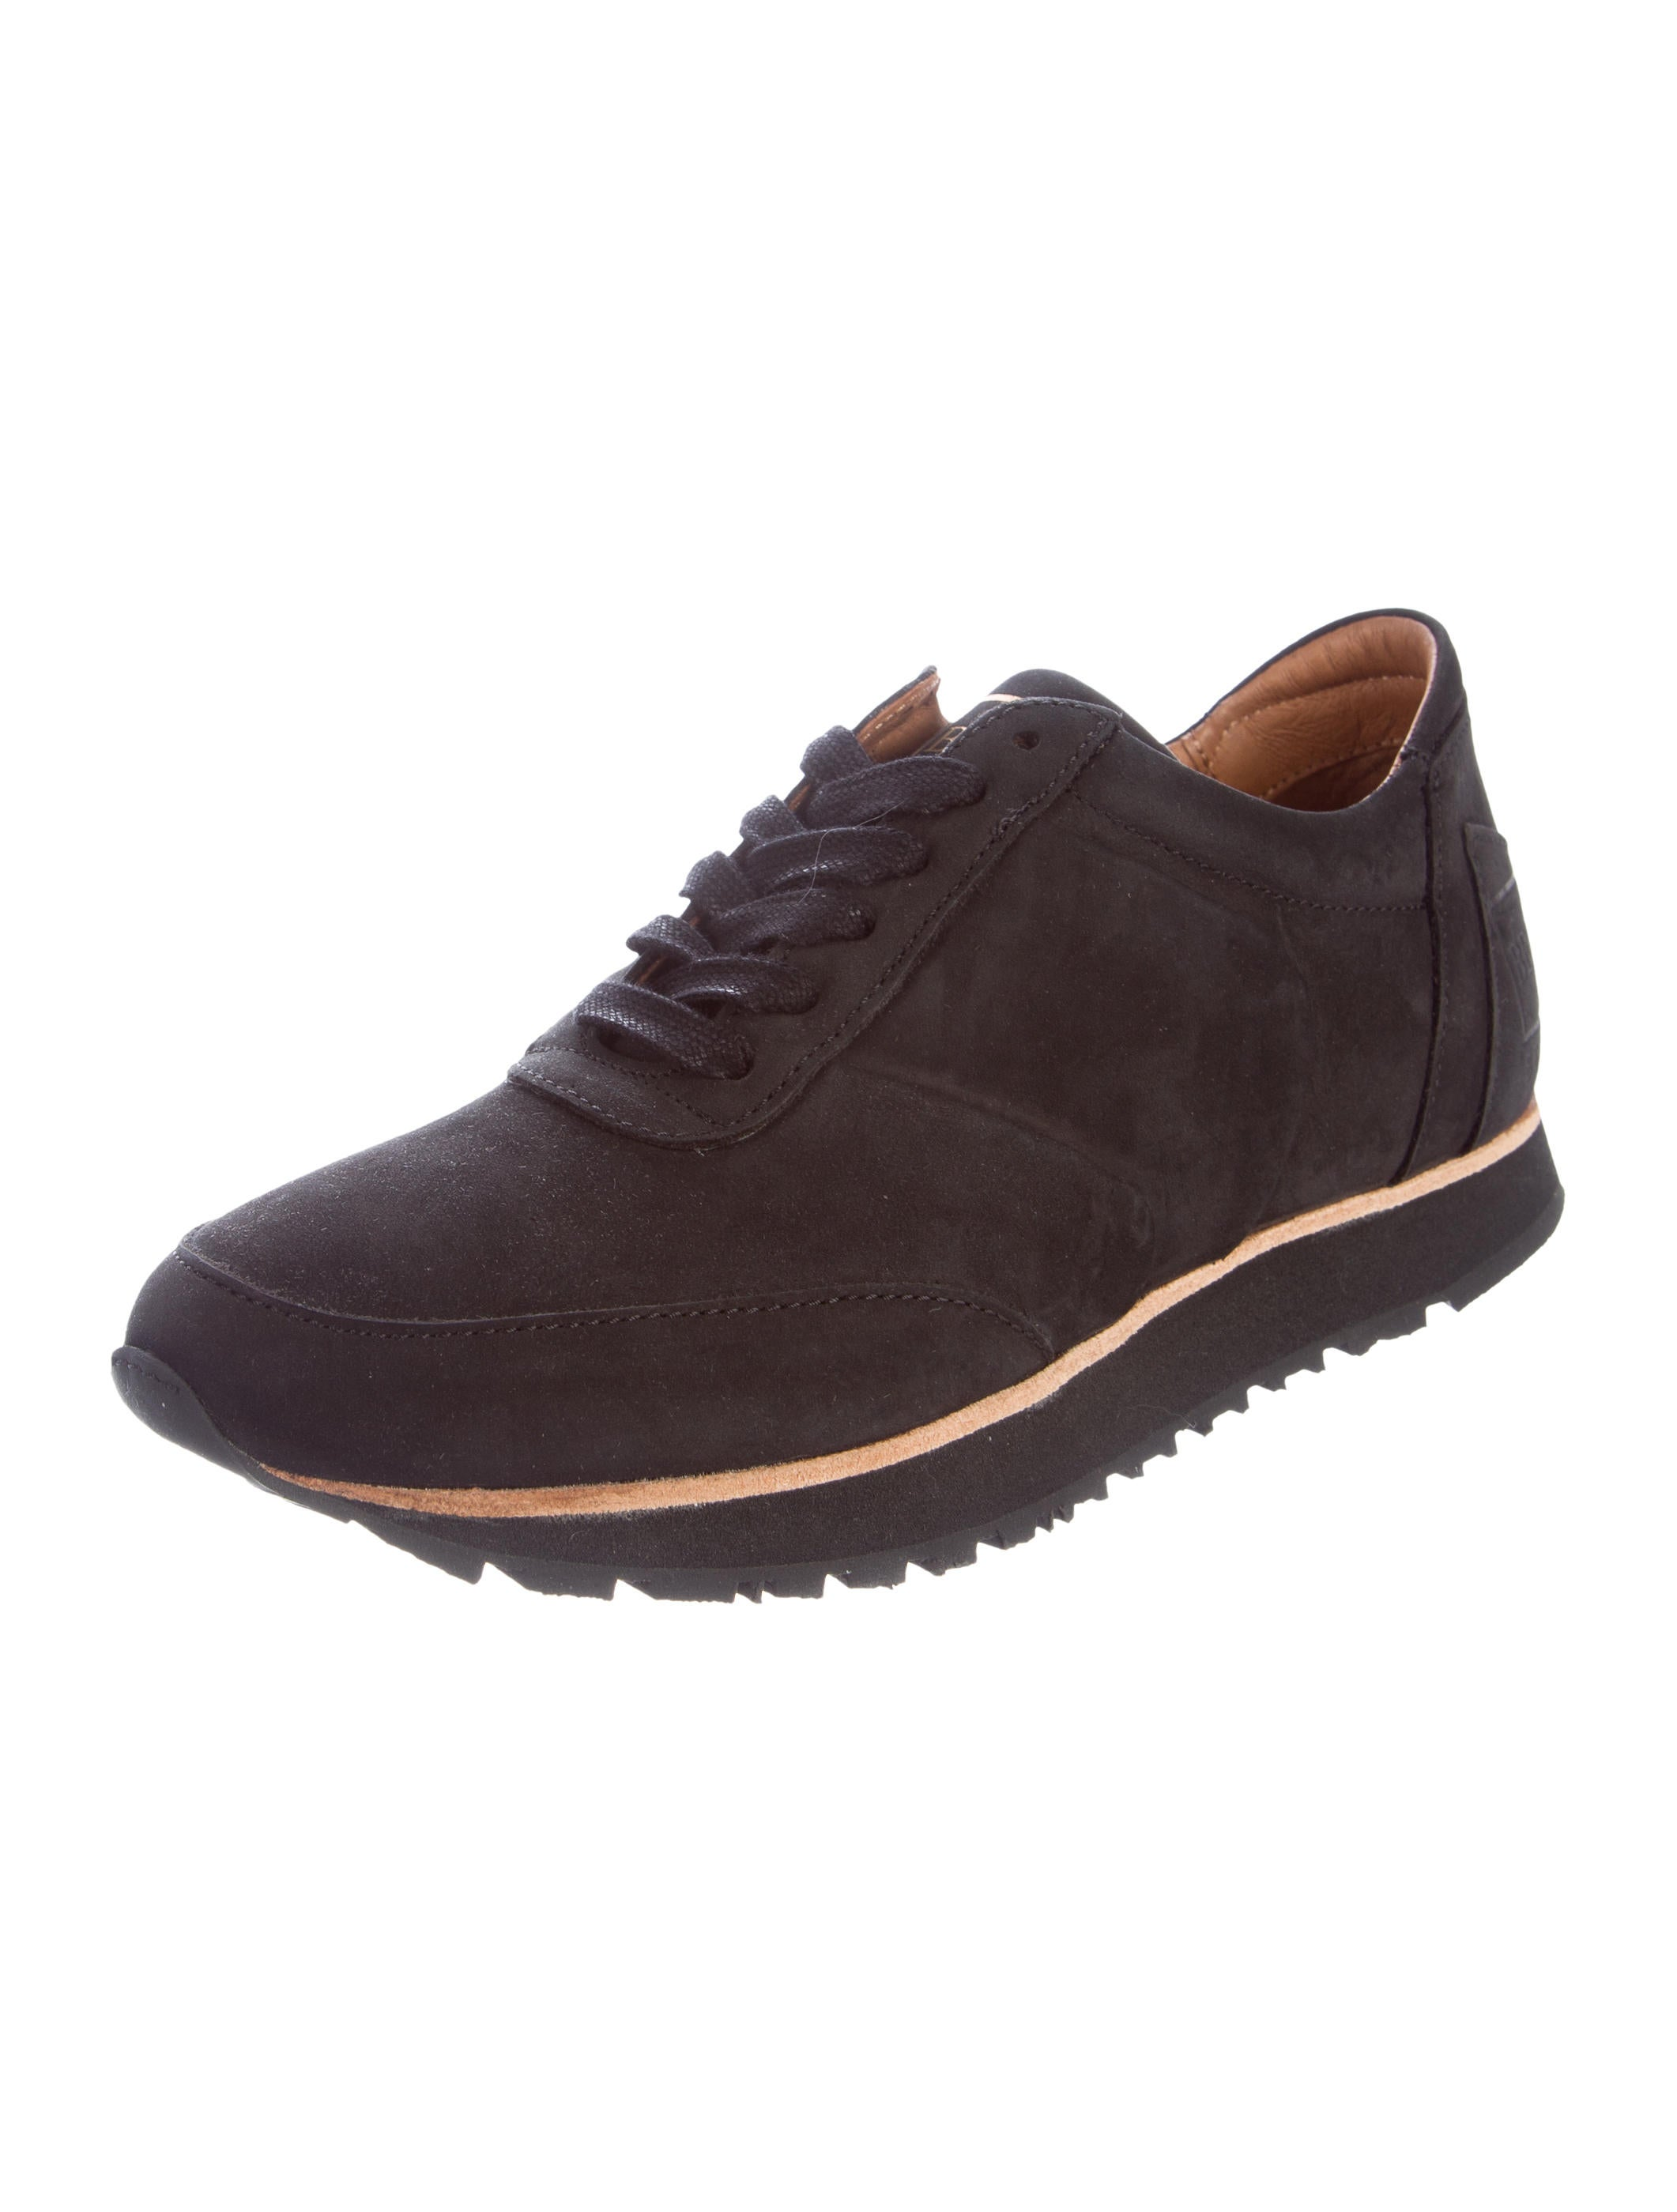 Beyene Nubuck Low-Top Sneakers w/ Tags buy cheap reliable NmKah